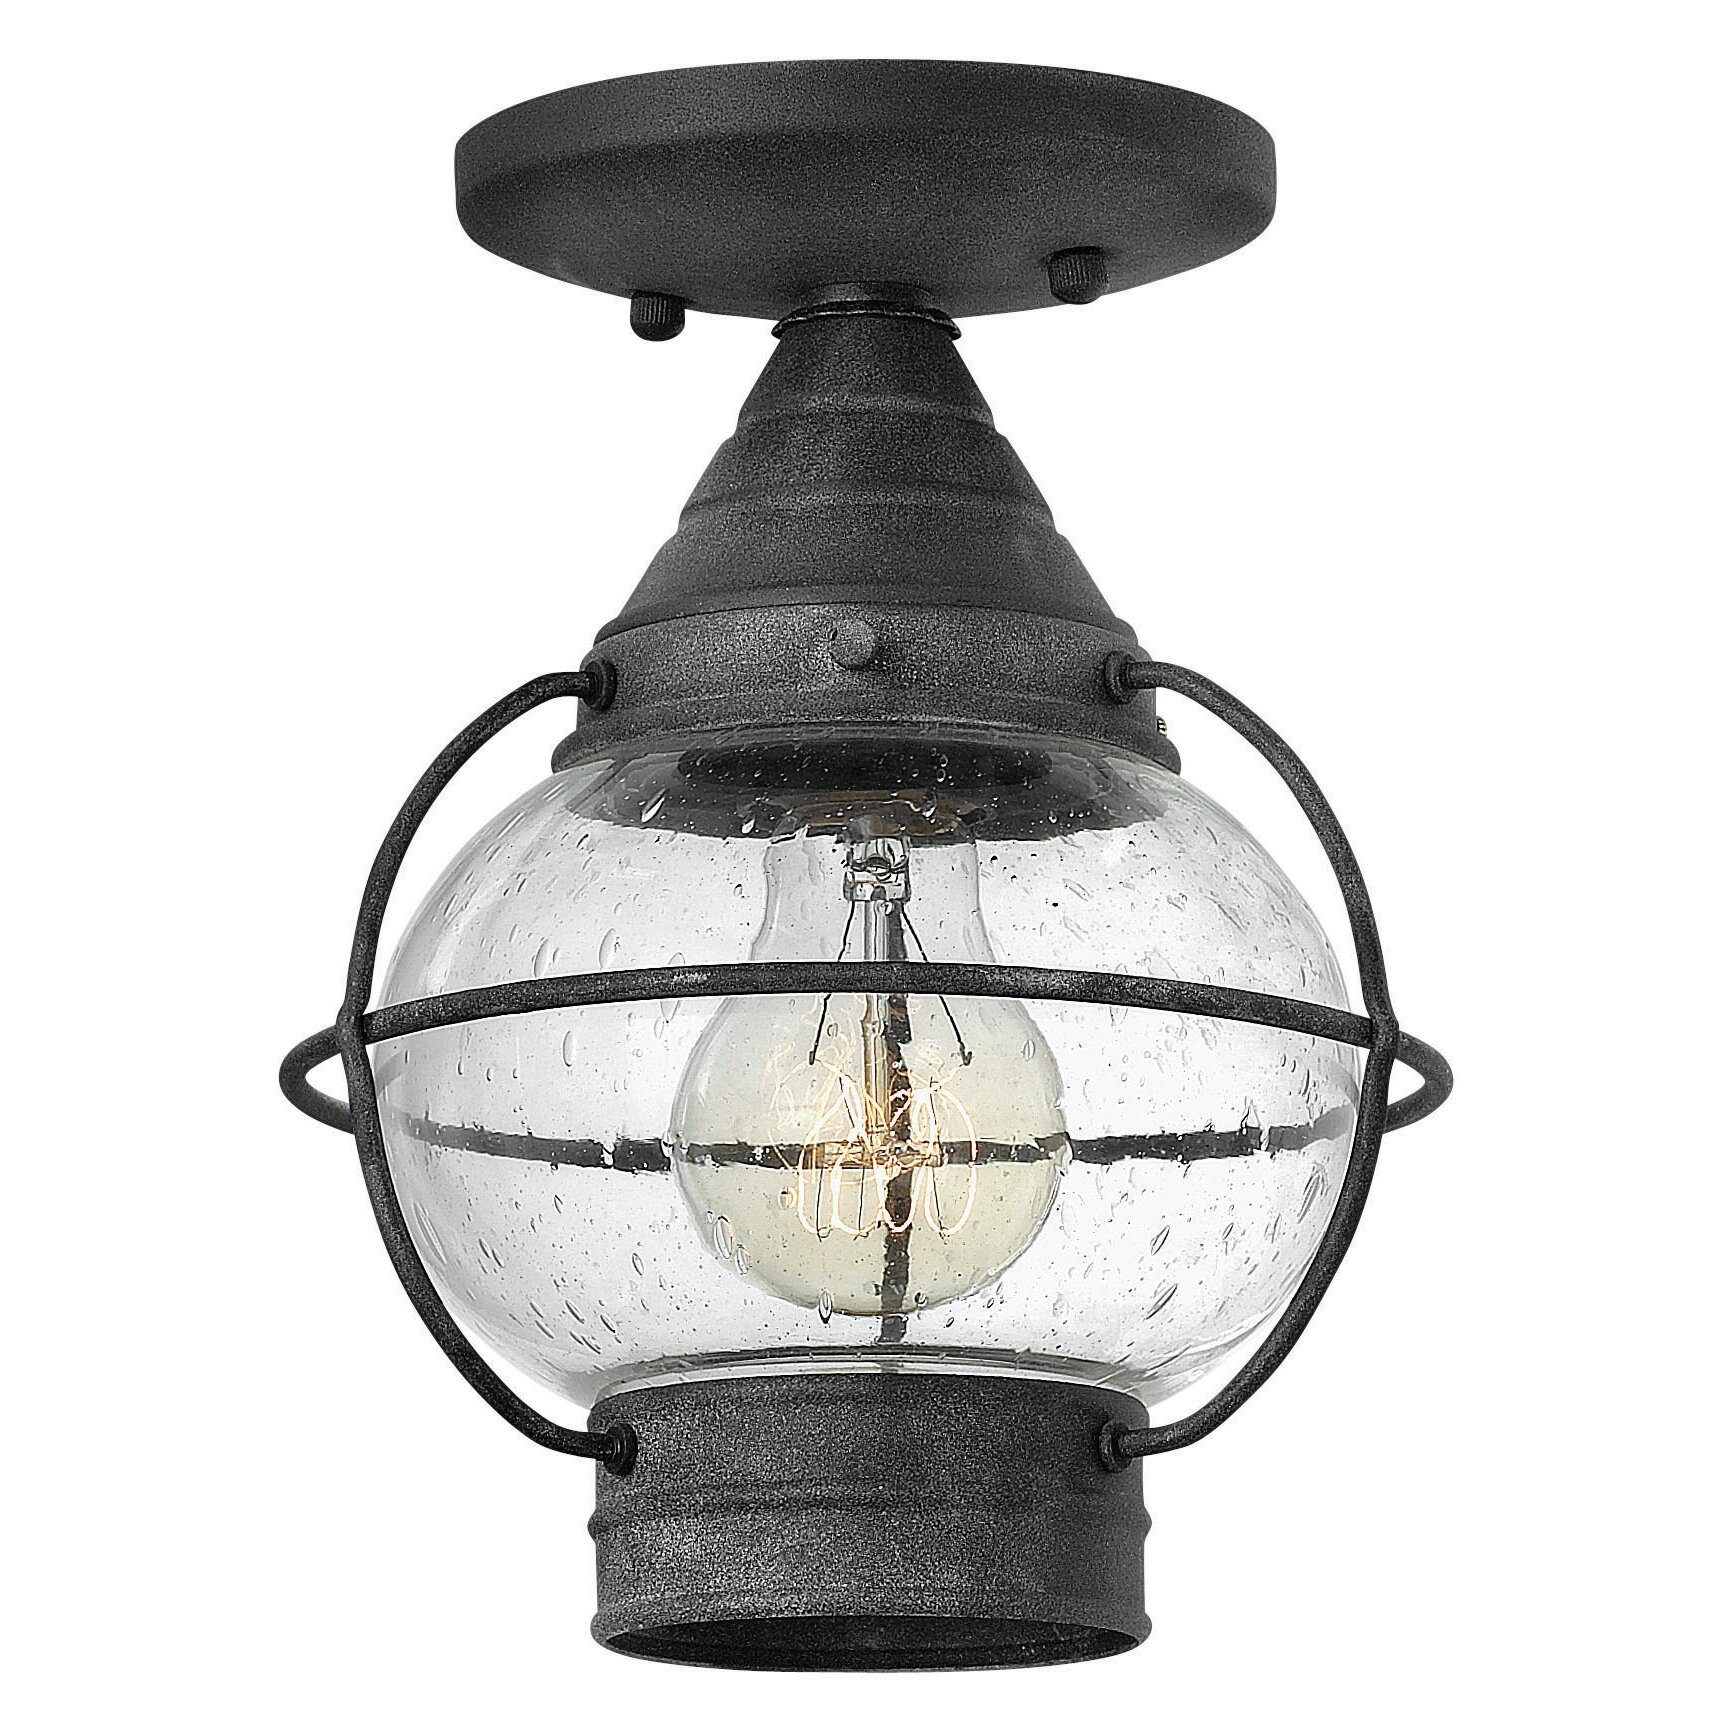 Hinkley Lighting Cape Cod 1 Light Outdoor Semi Flush Mount